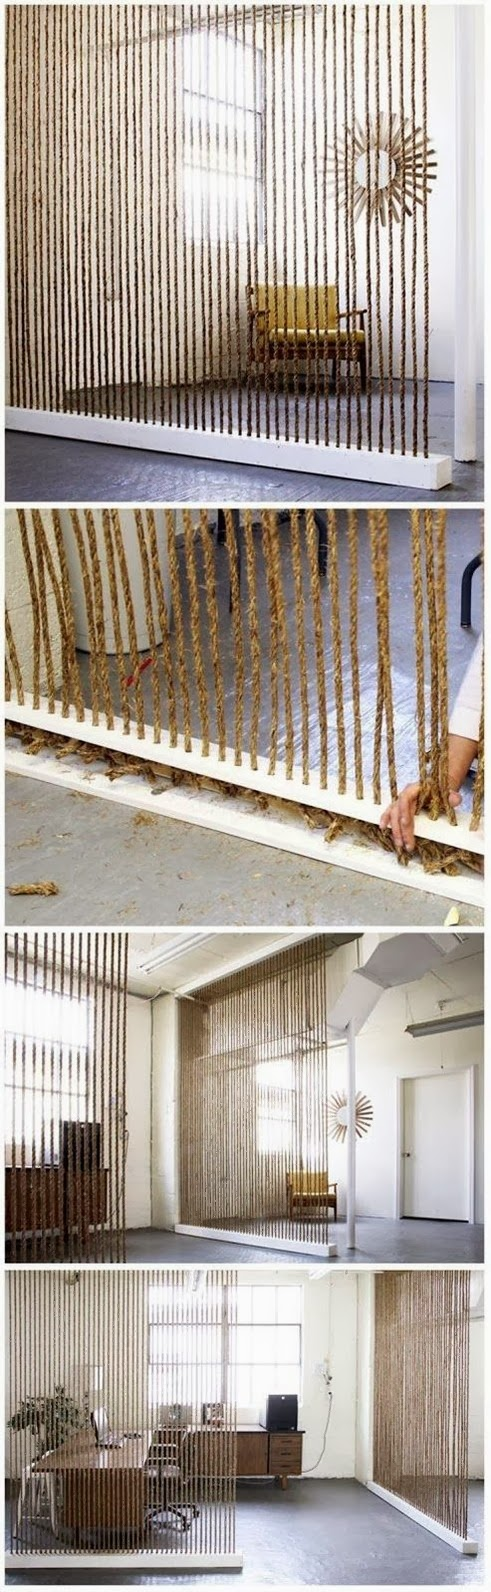 Diy home decor and interior diy rope wall for How to make a rope wall